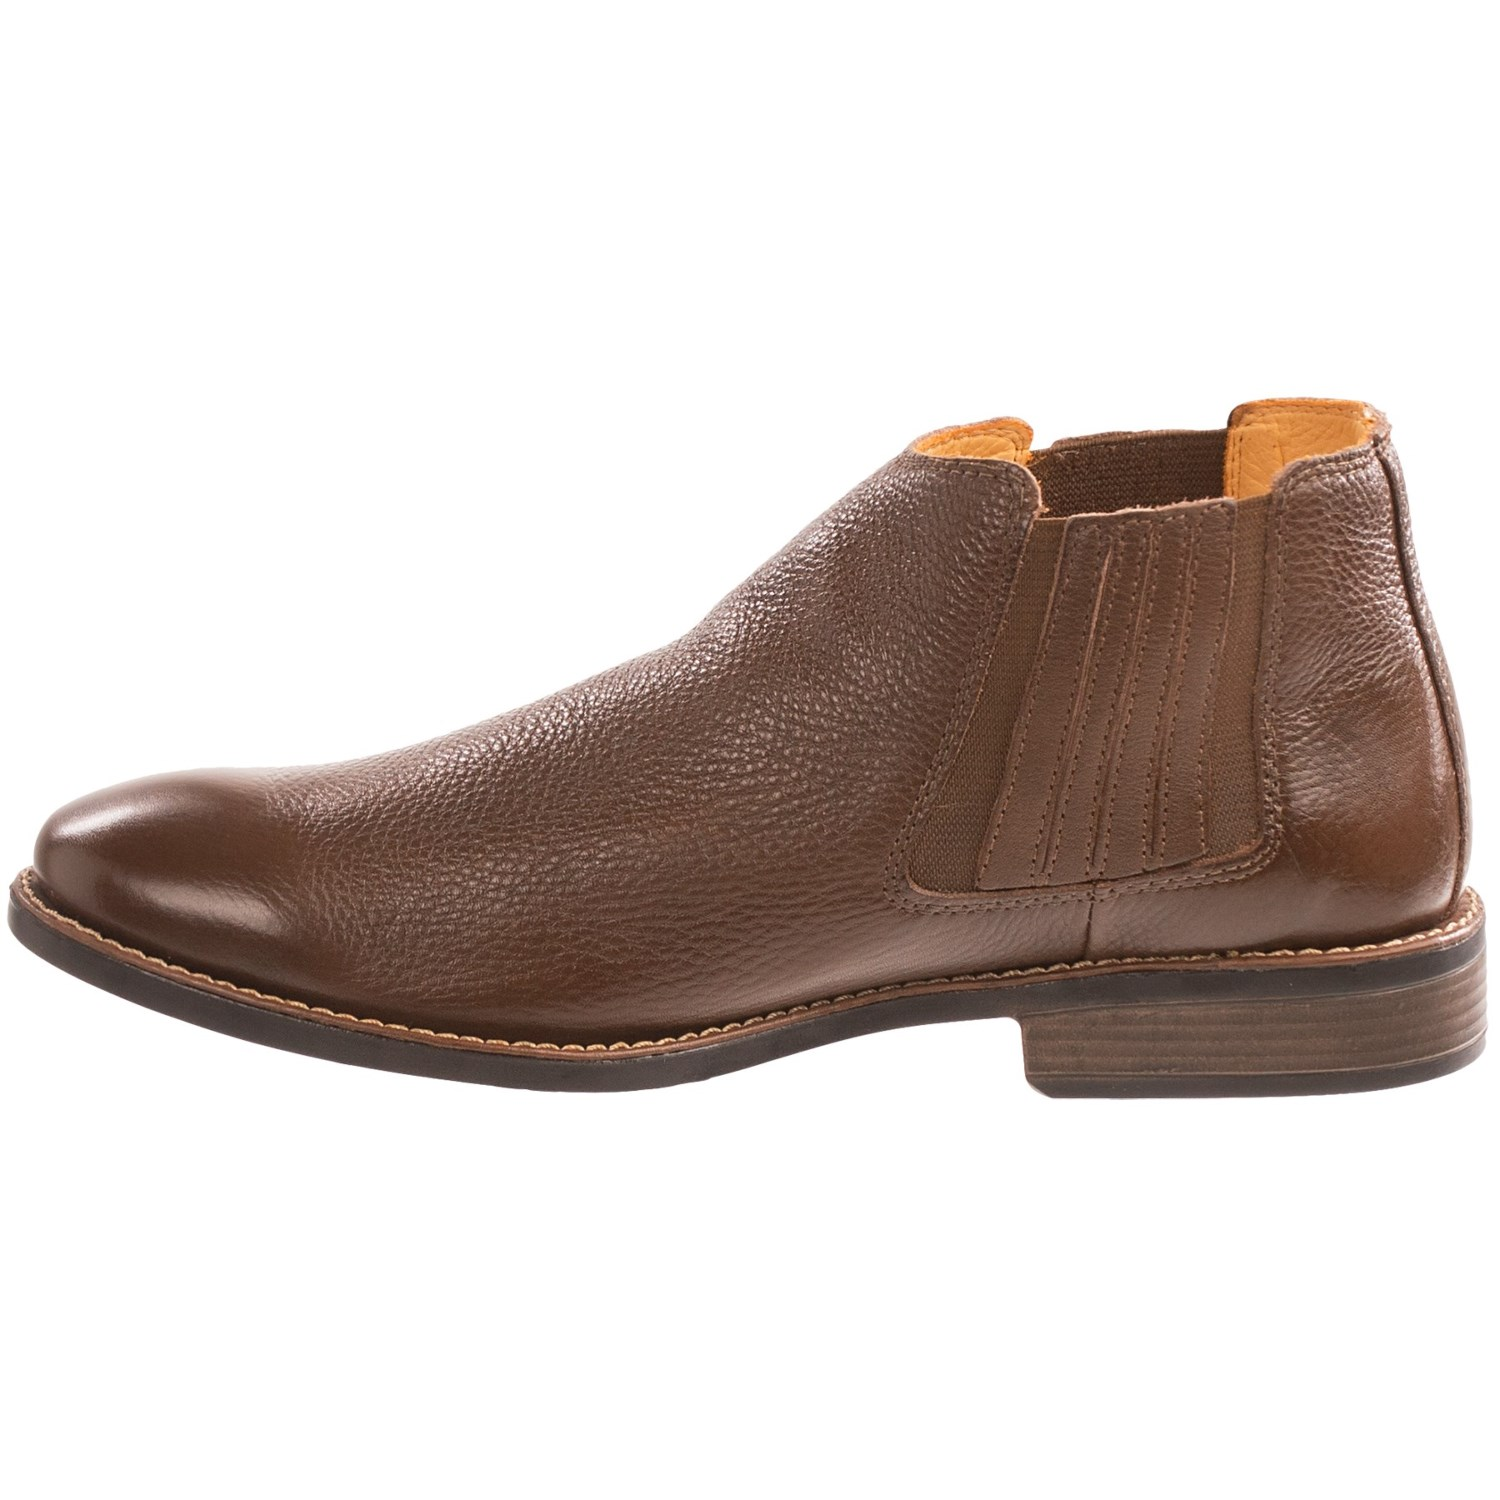 Leather Ankle Boots For Men - Boot Hto